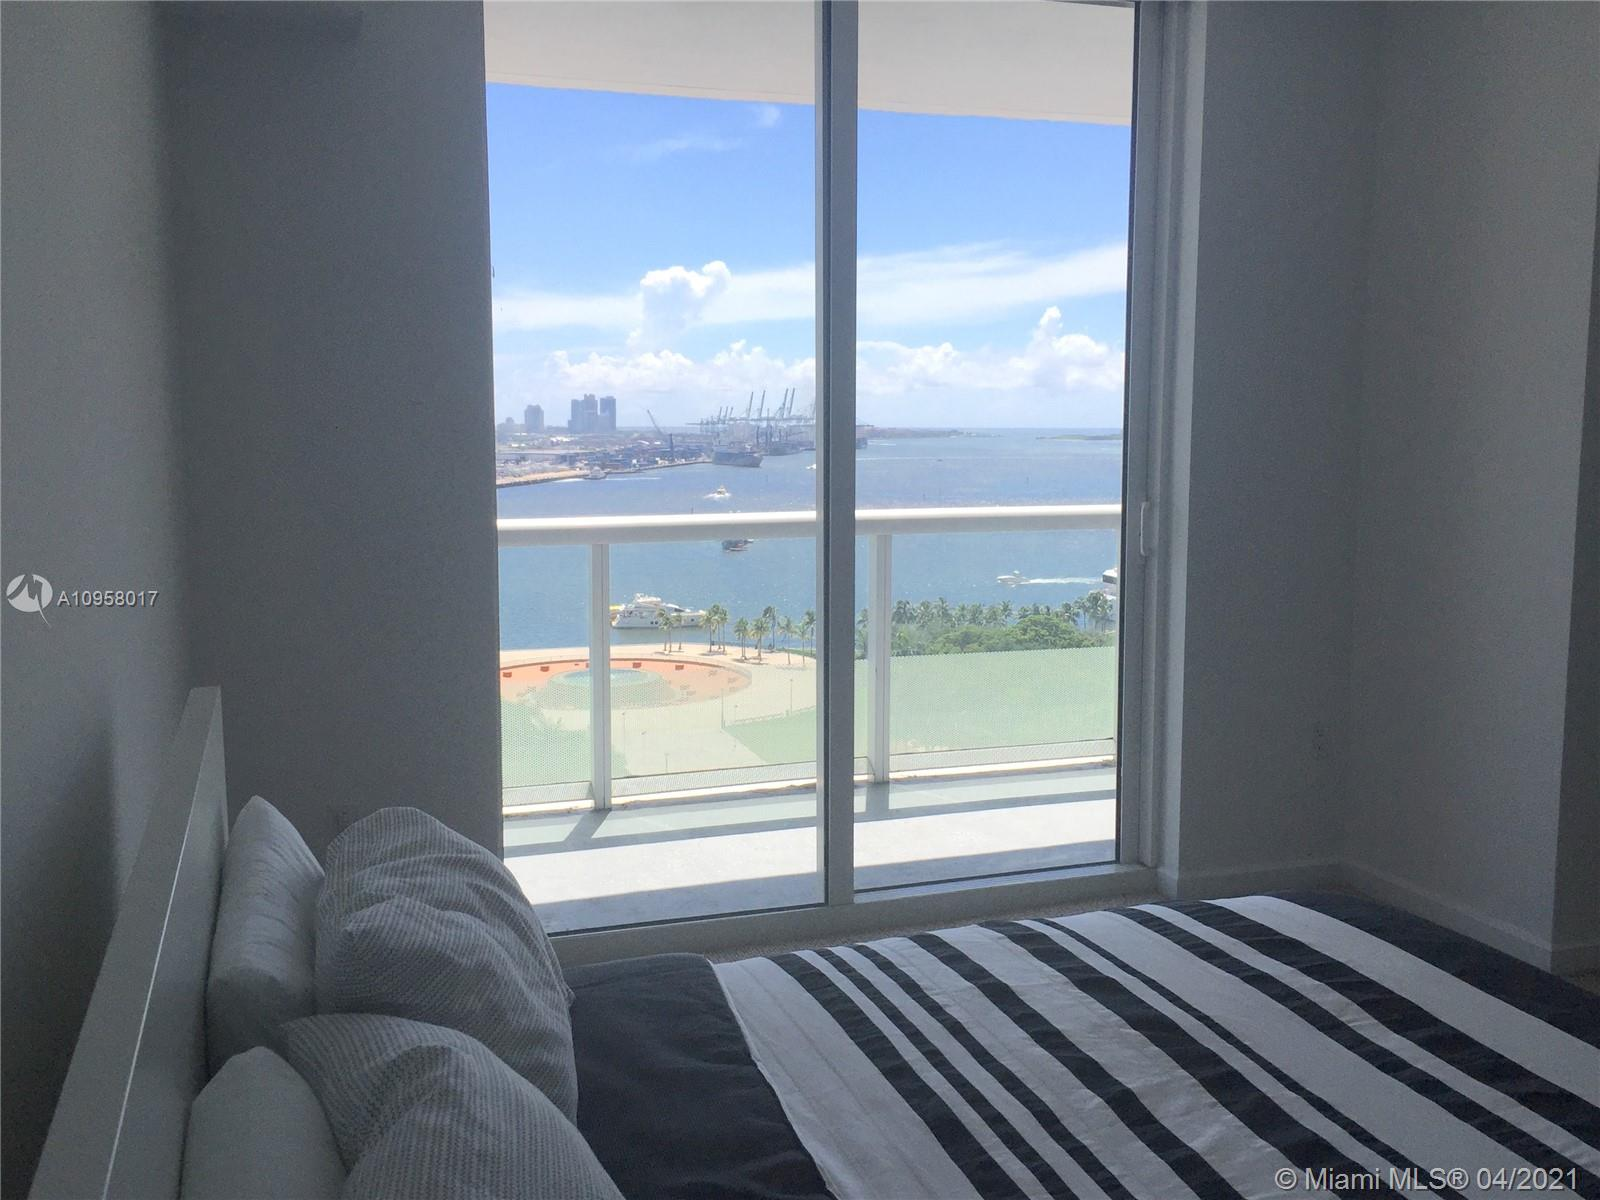 Beautiful 2 bedroom 2 bathroom + den, high-end residence,unobstructed ocean view, oversized balcony, pool, gym, sauna and more, Prime convenient location, walking distance to restaurants, AA Arena, metro mover station, Available immediately.